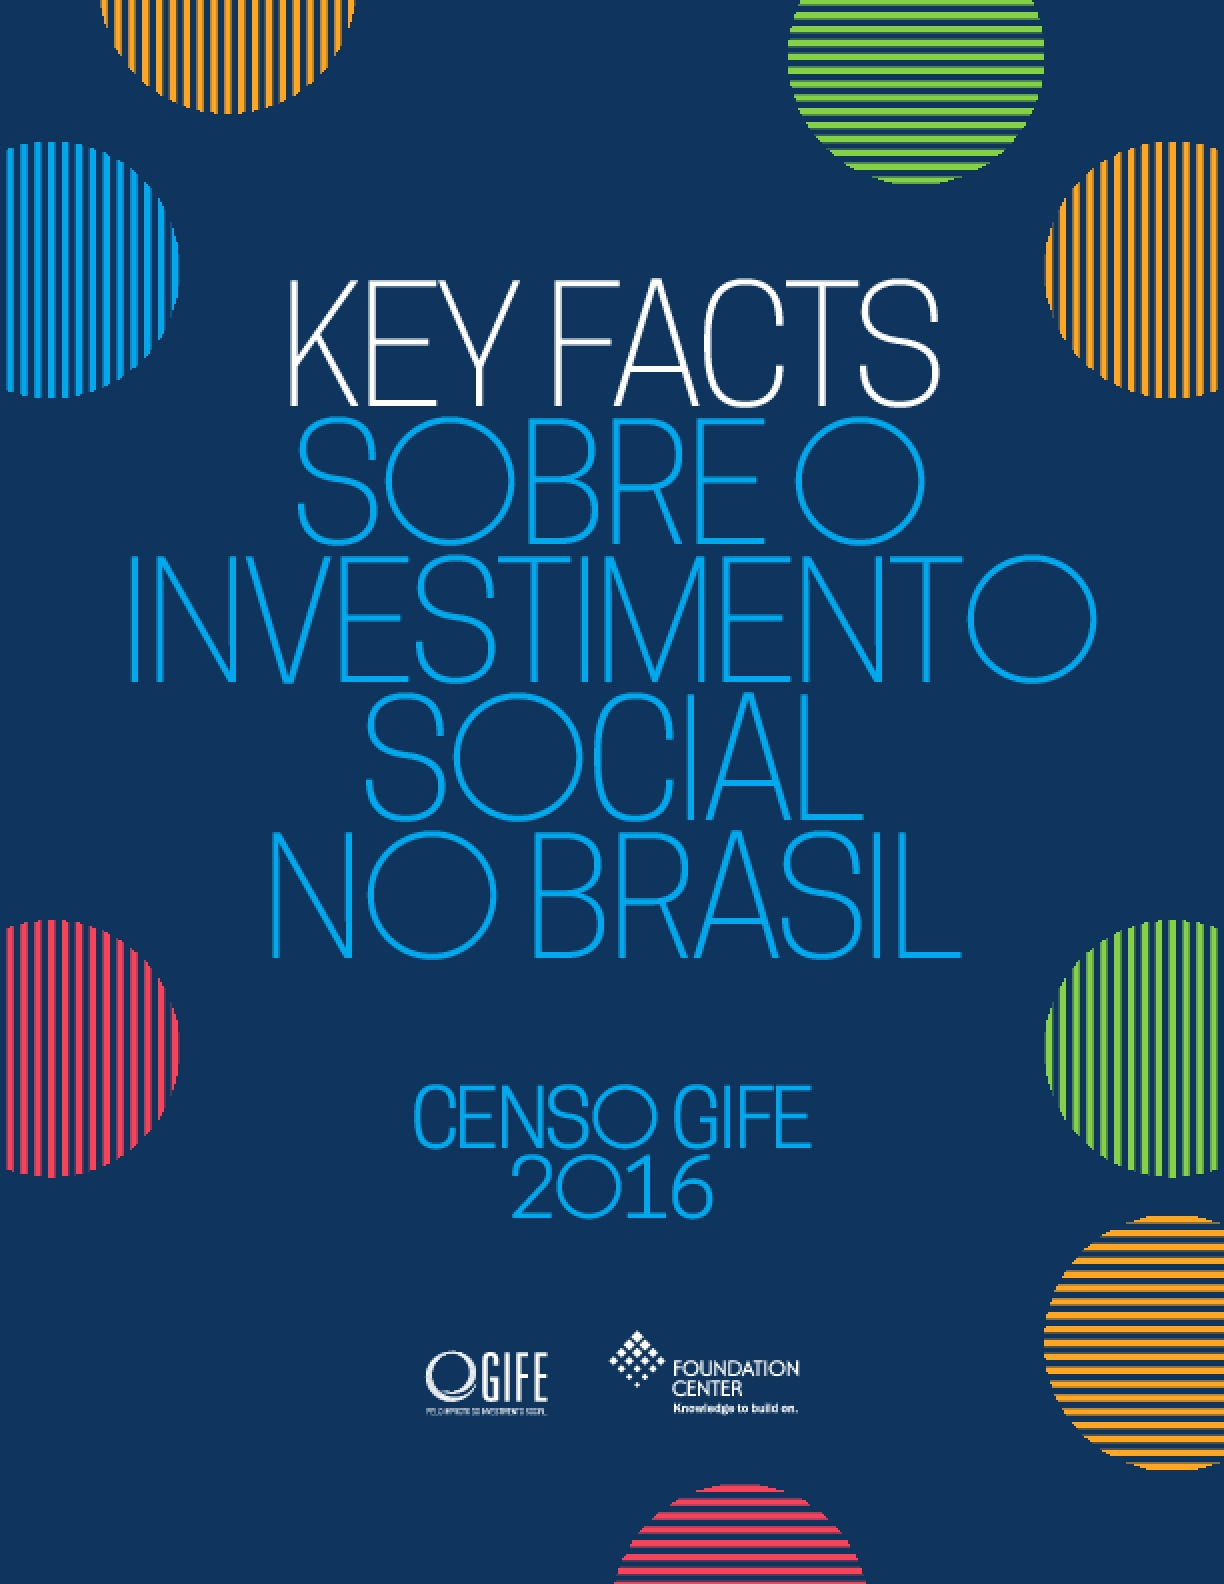 Key Facts Sobre o Investimento Social no Brasil: Censo GIFE 2016